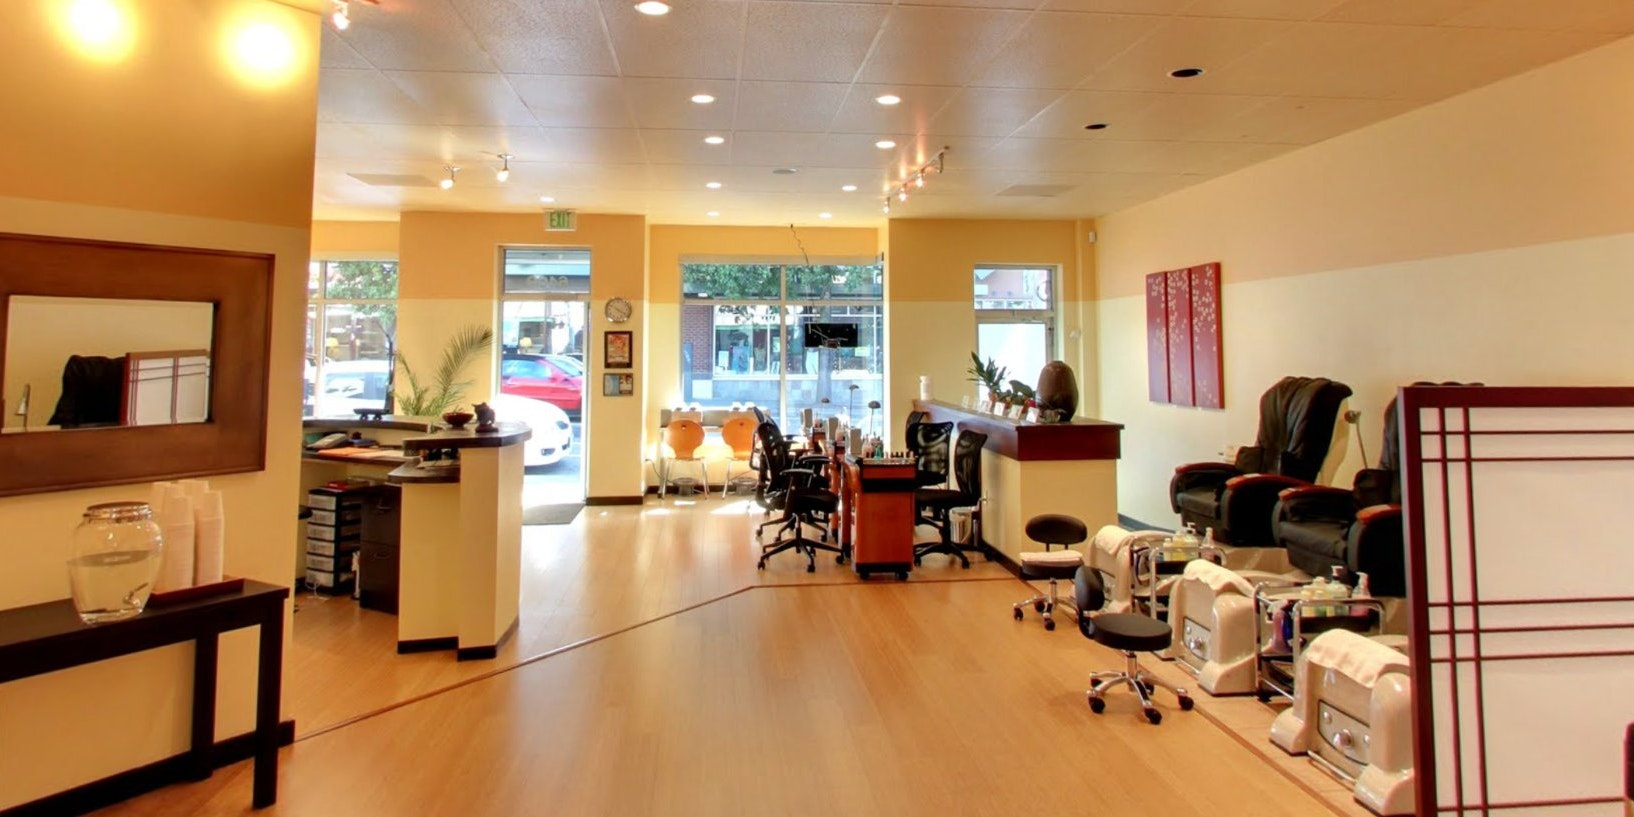 Hoa Salon